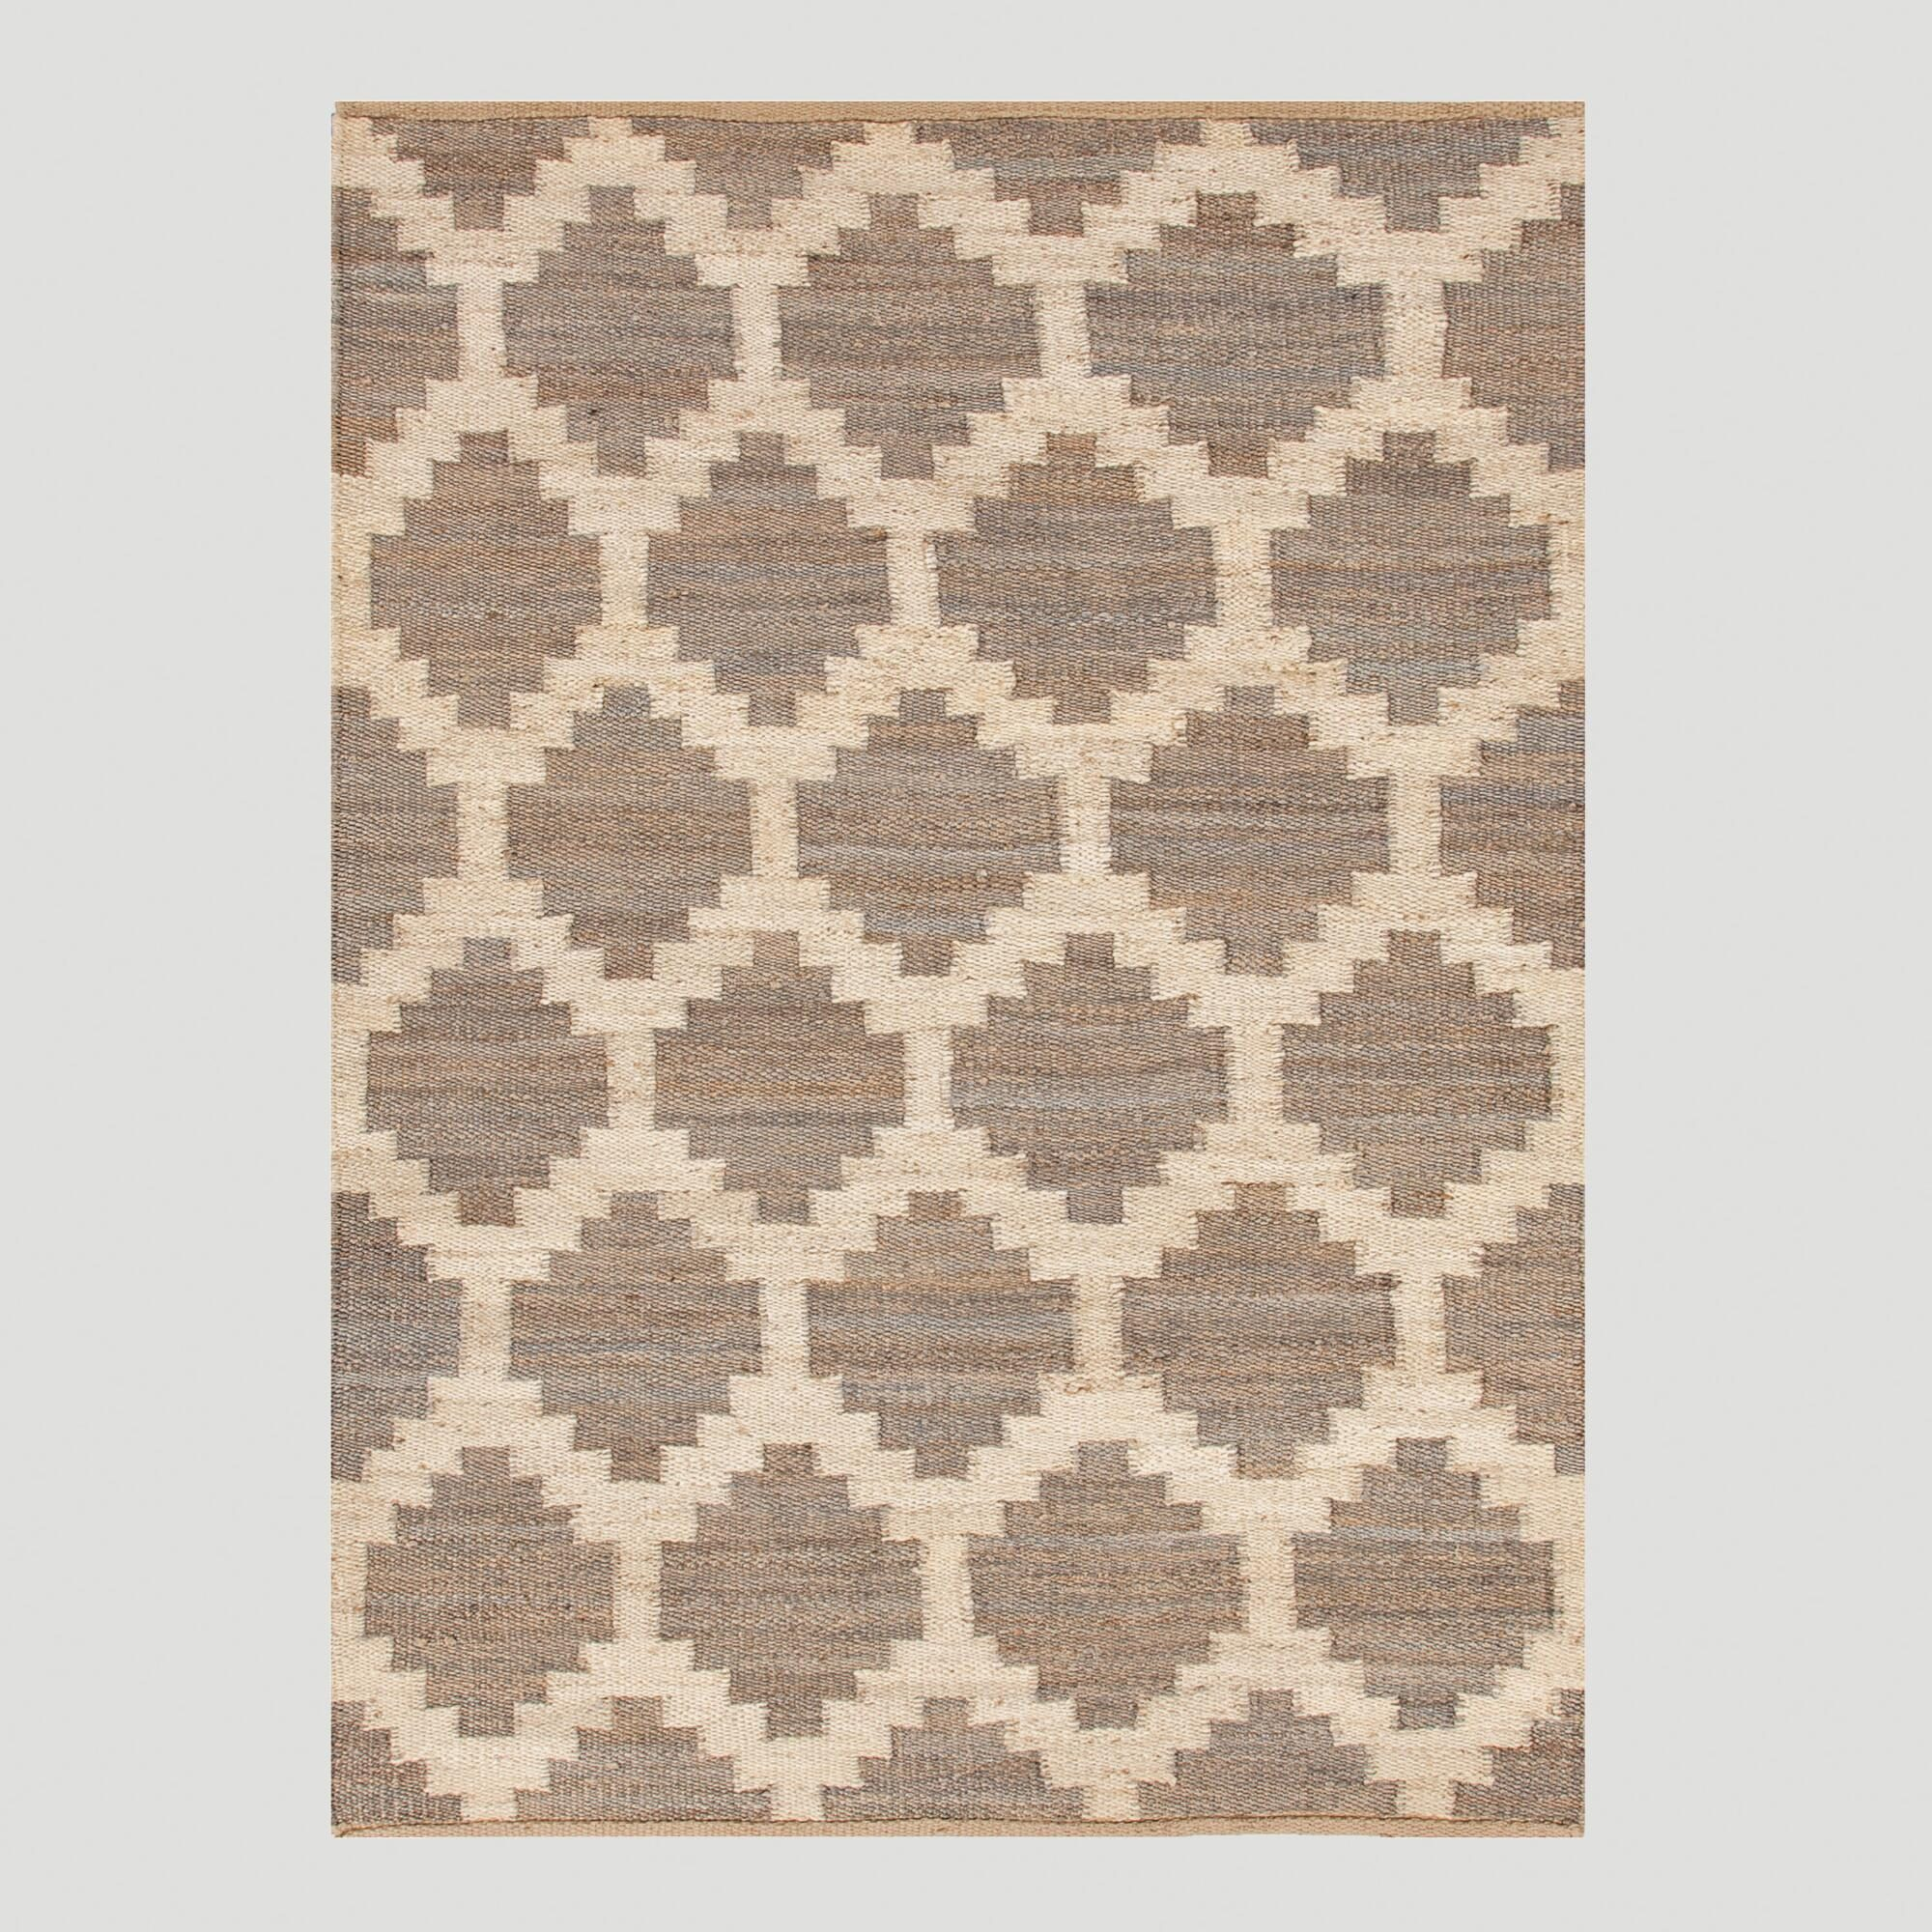 Taupe Jiya Flat-Woven Hemp Rug: Brown/Gray - 2' x 3' by World Market 2Ftx3Ft